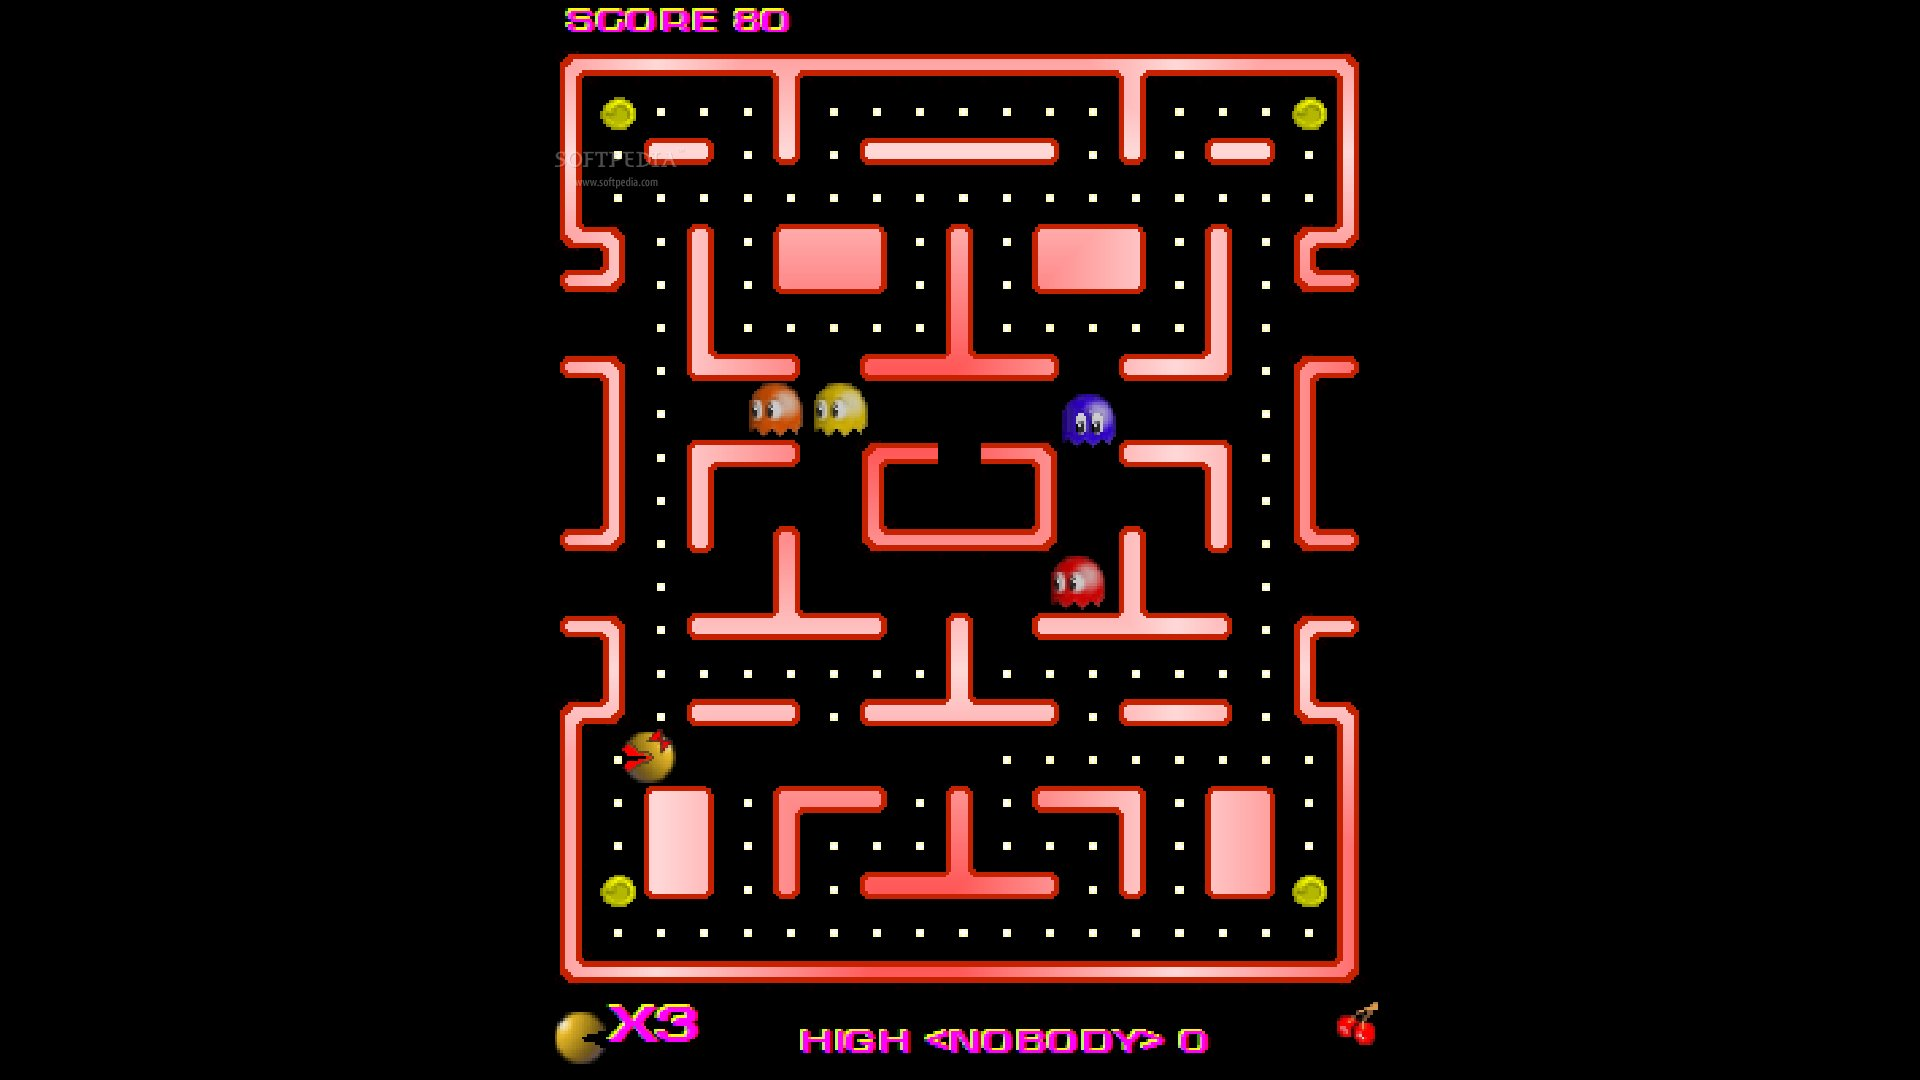 Free+Ms+Pac+Man+Games Play Pacman Flash Games Free Online Pac Man ...